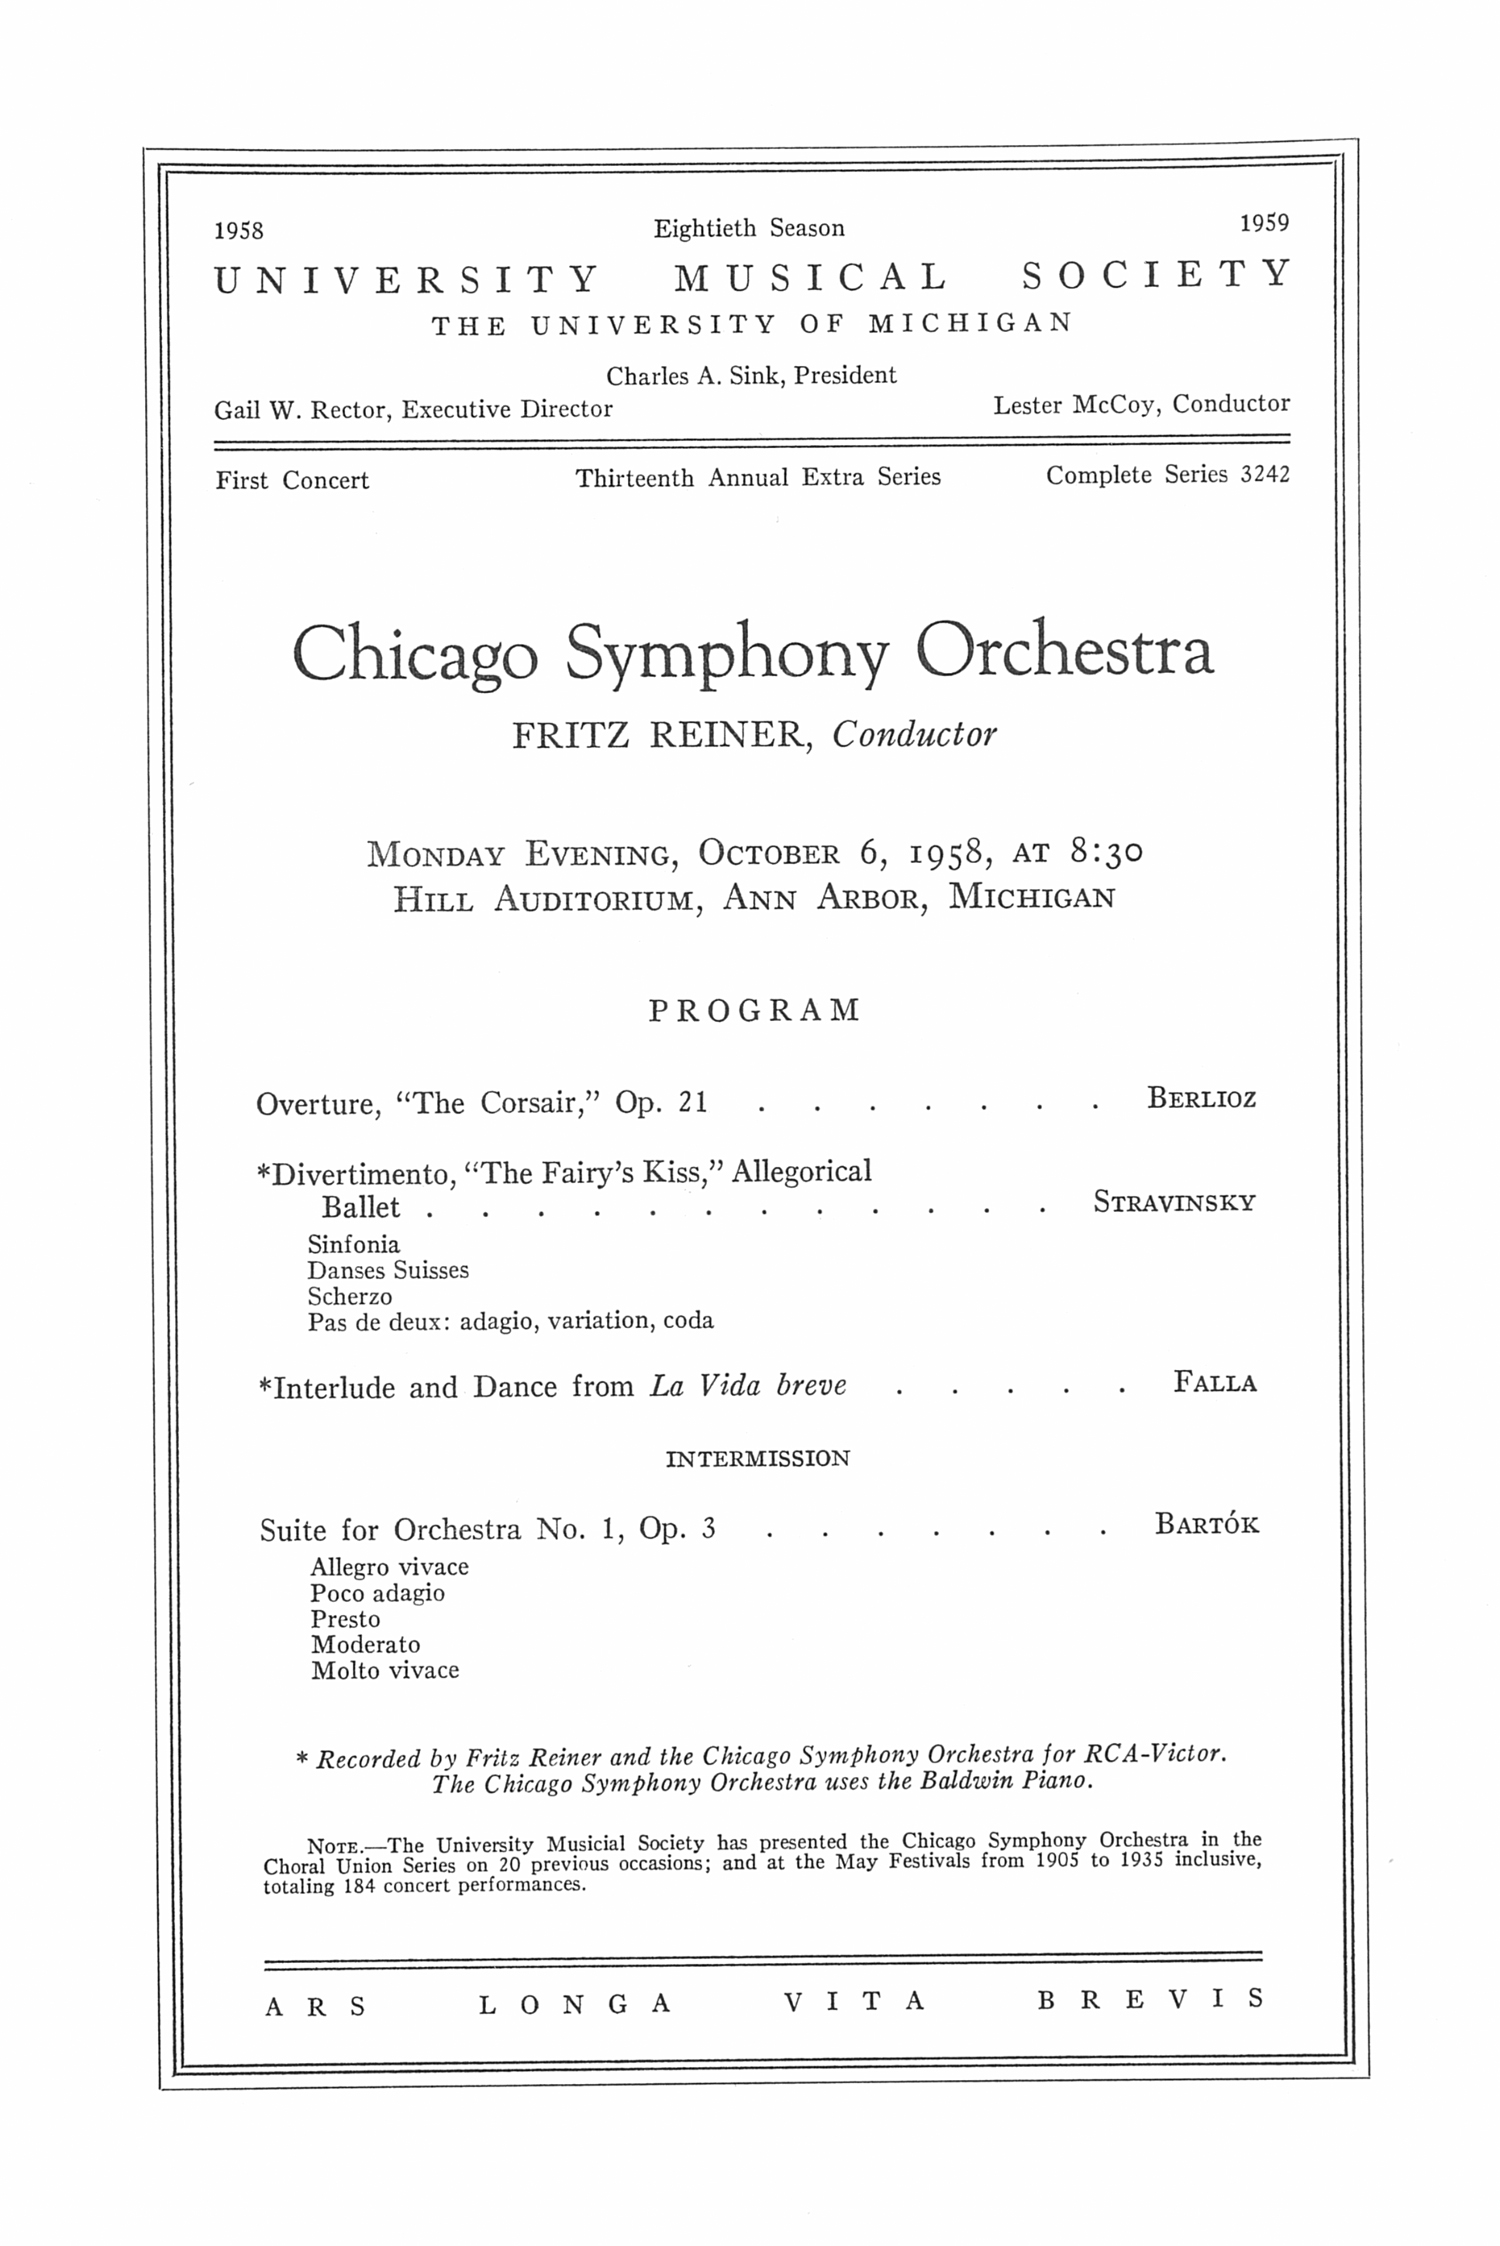 UMS Concert Program, October 6, 1958: Chicago Symphony Orchestra --  image